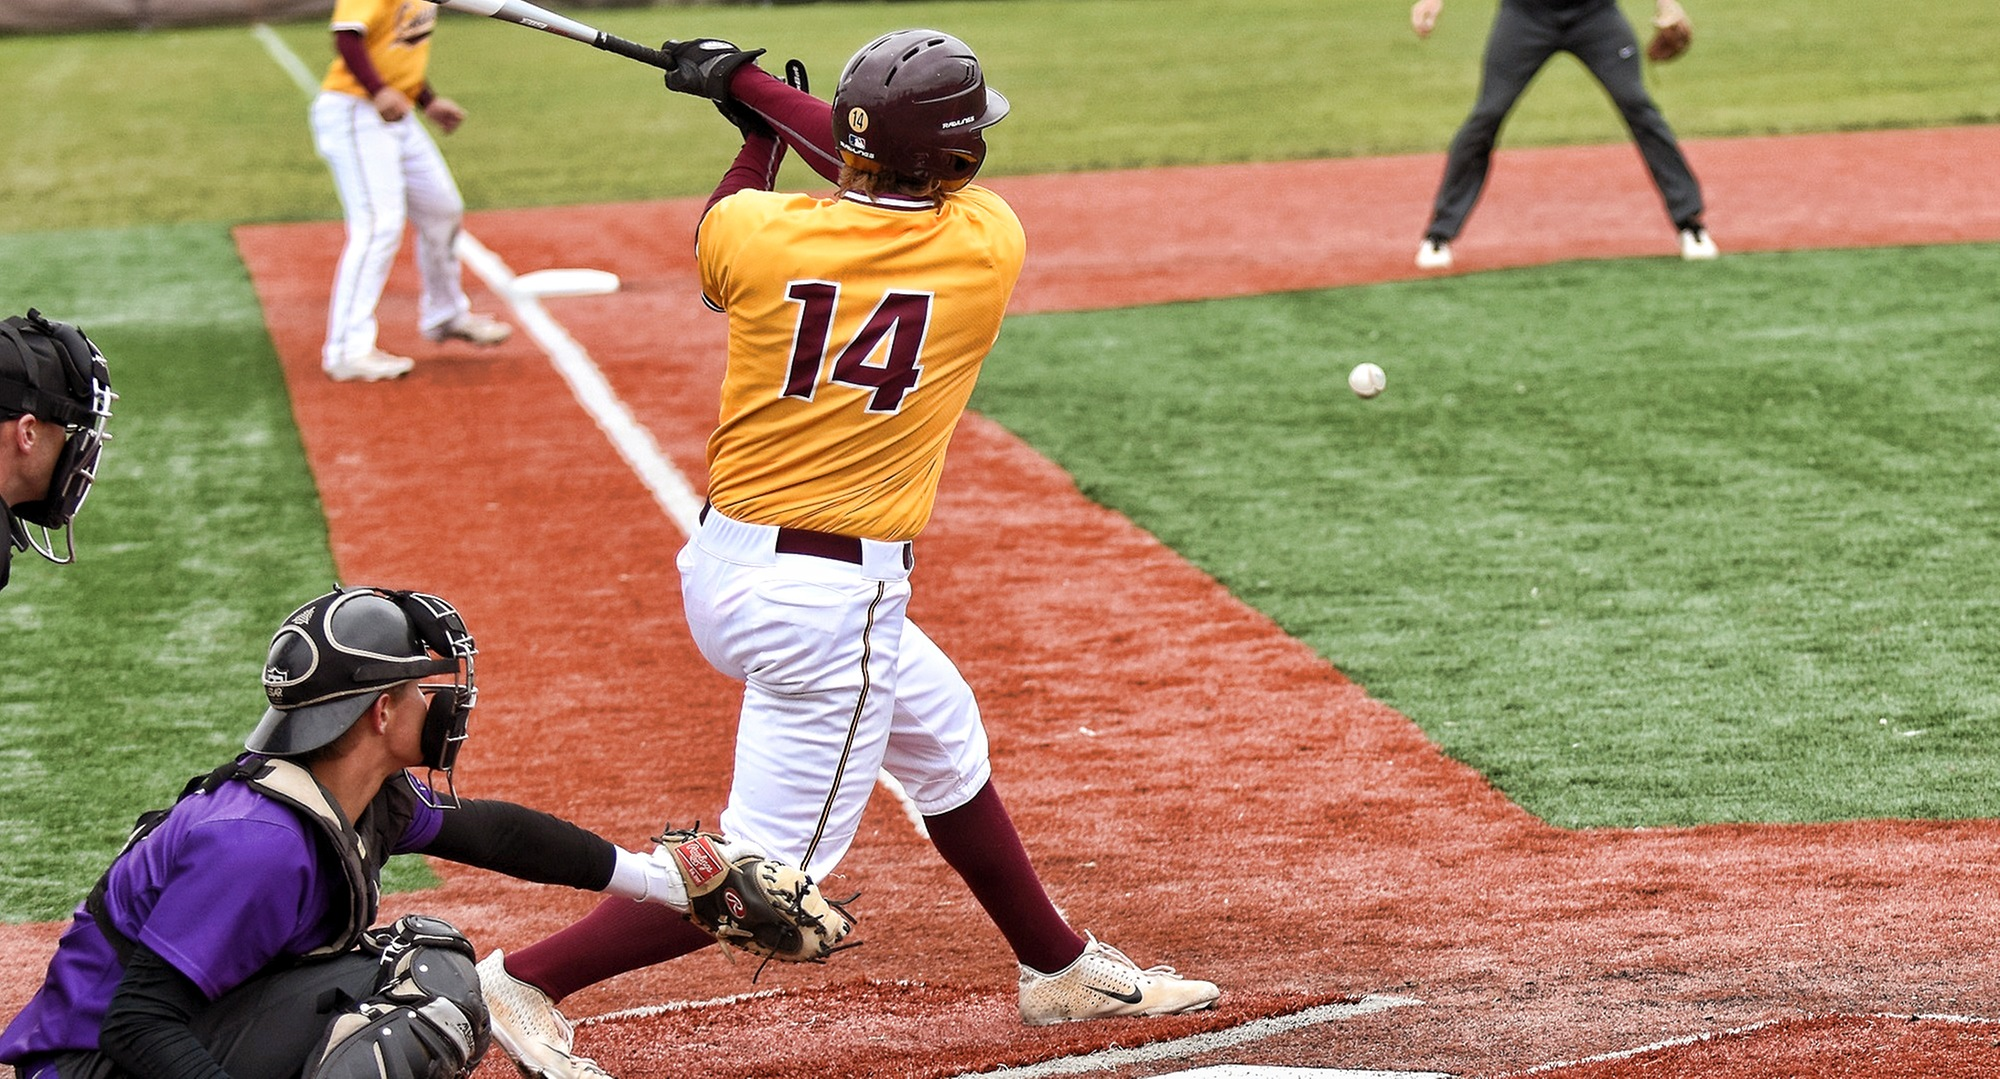 Senior Austin Ver Steeg was the only Cobber player to have a hit in both games of the team's doubleheader with Dickinson.